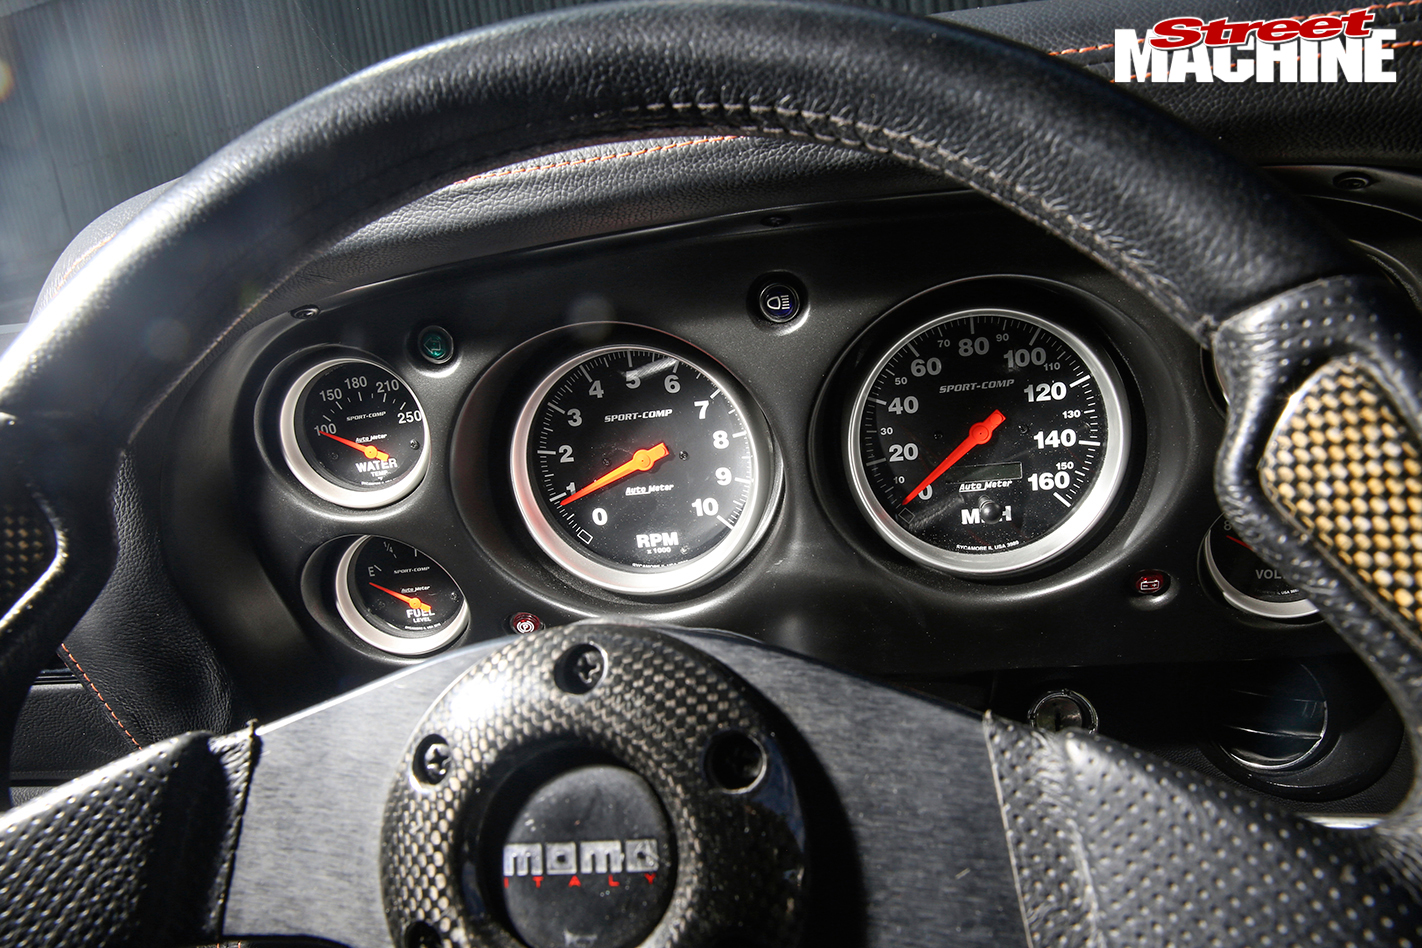 Ford -Mustang -BOSS-interior -dash